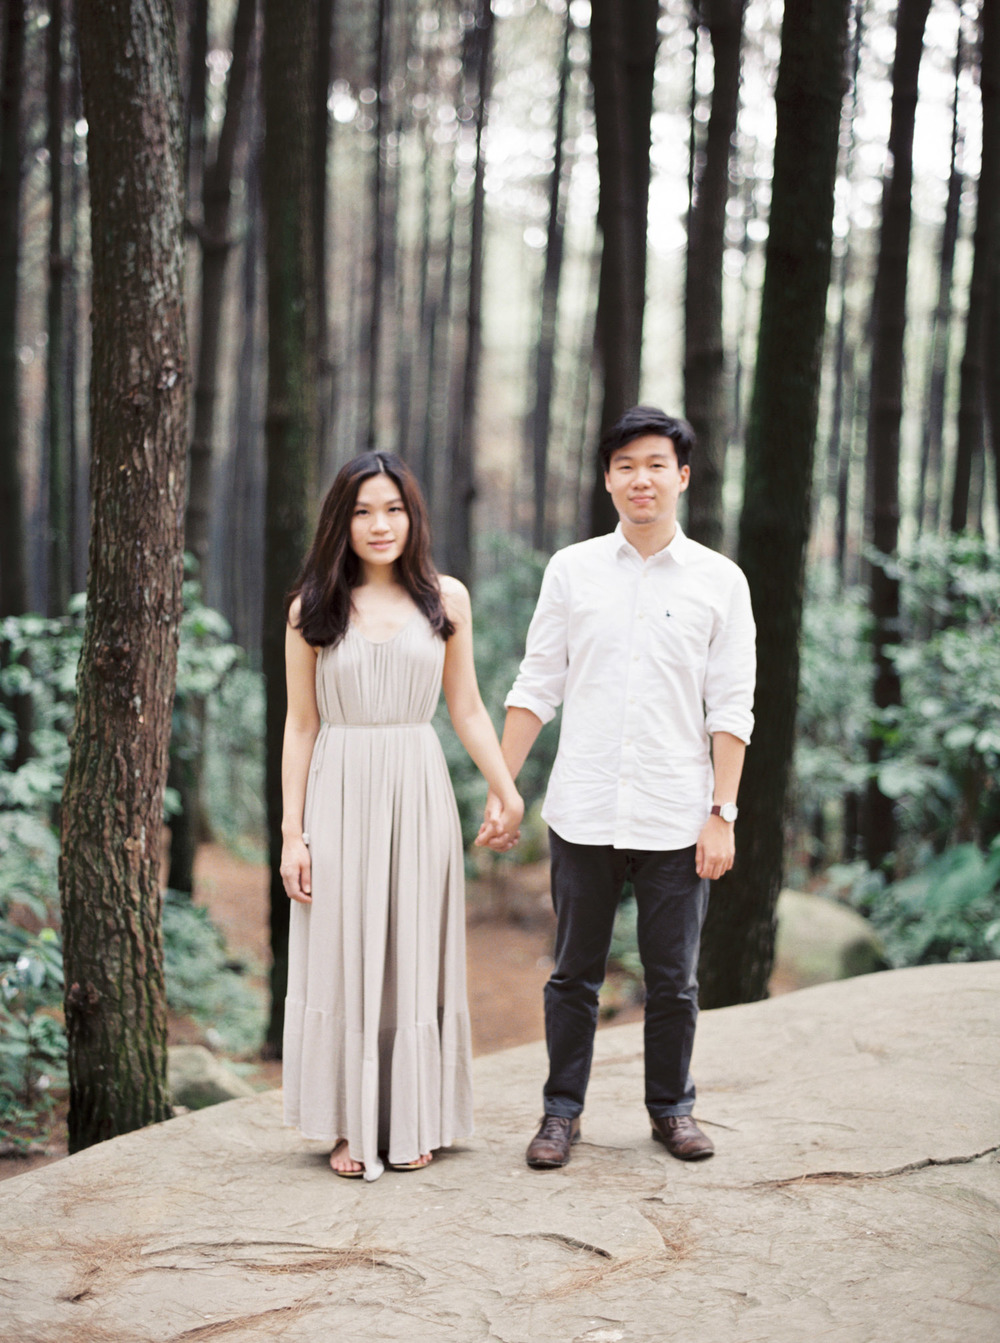 37-nature-outdoor-forest-prewedding-jakarta.jpg